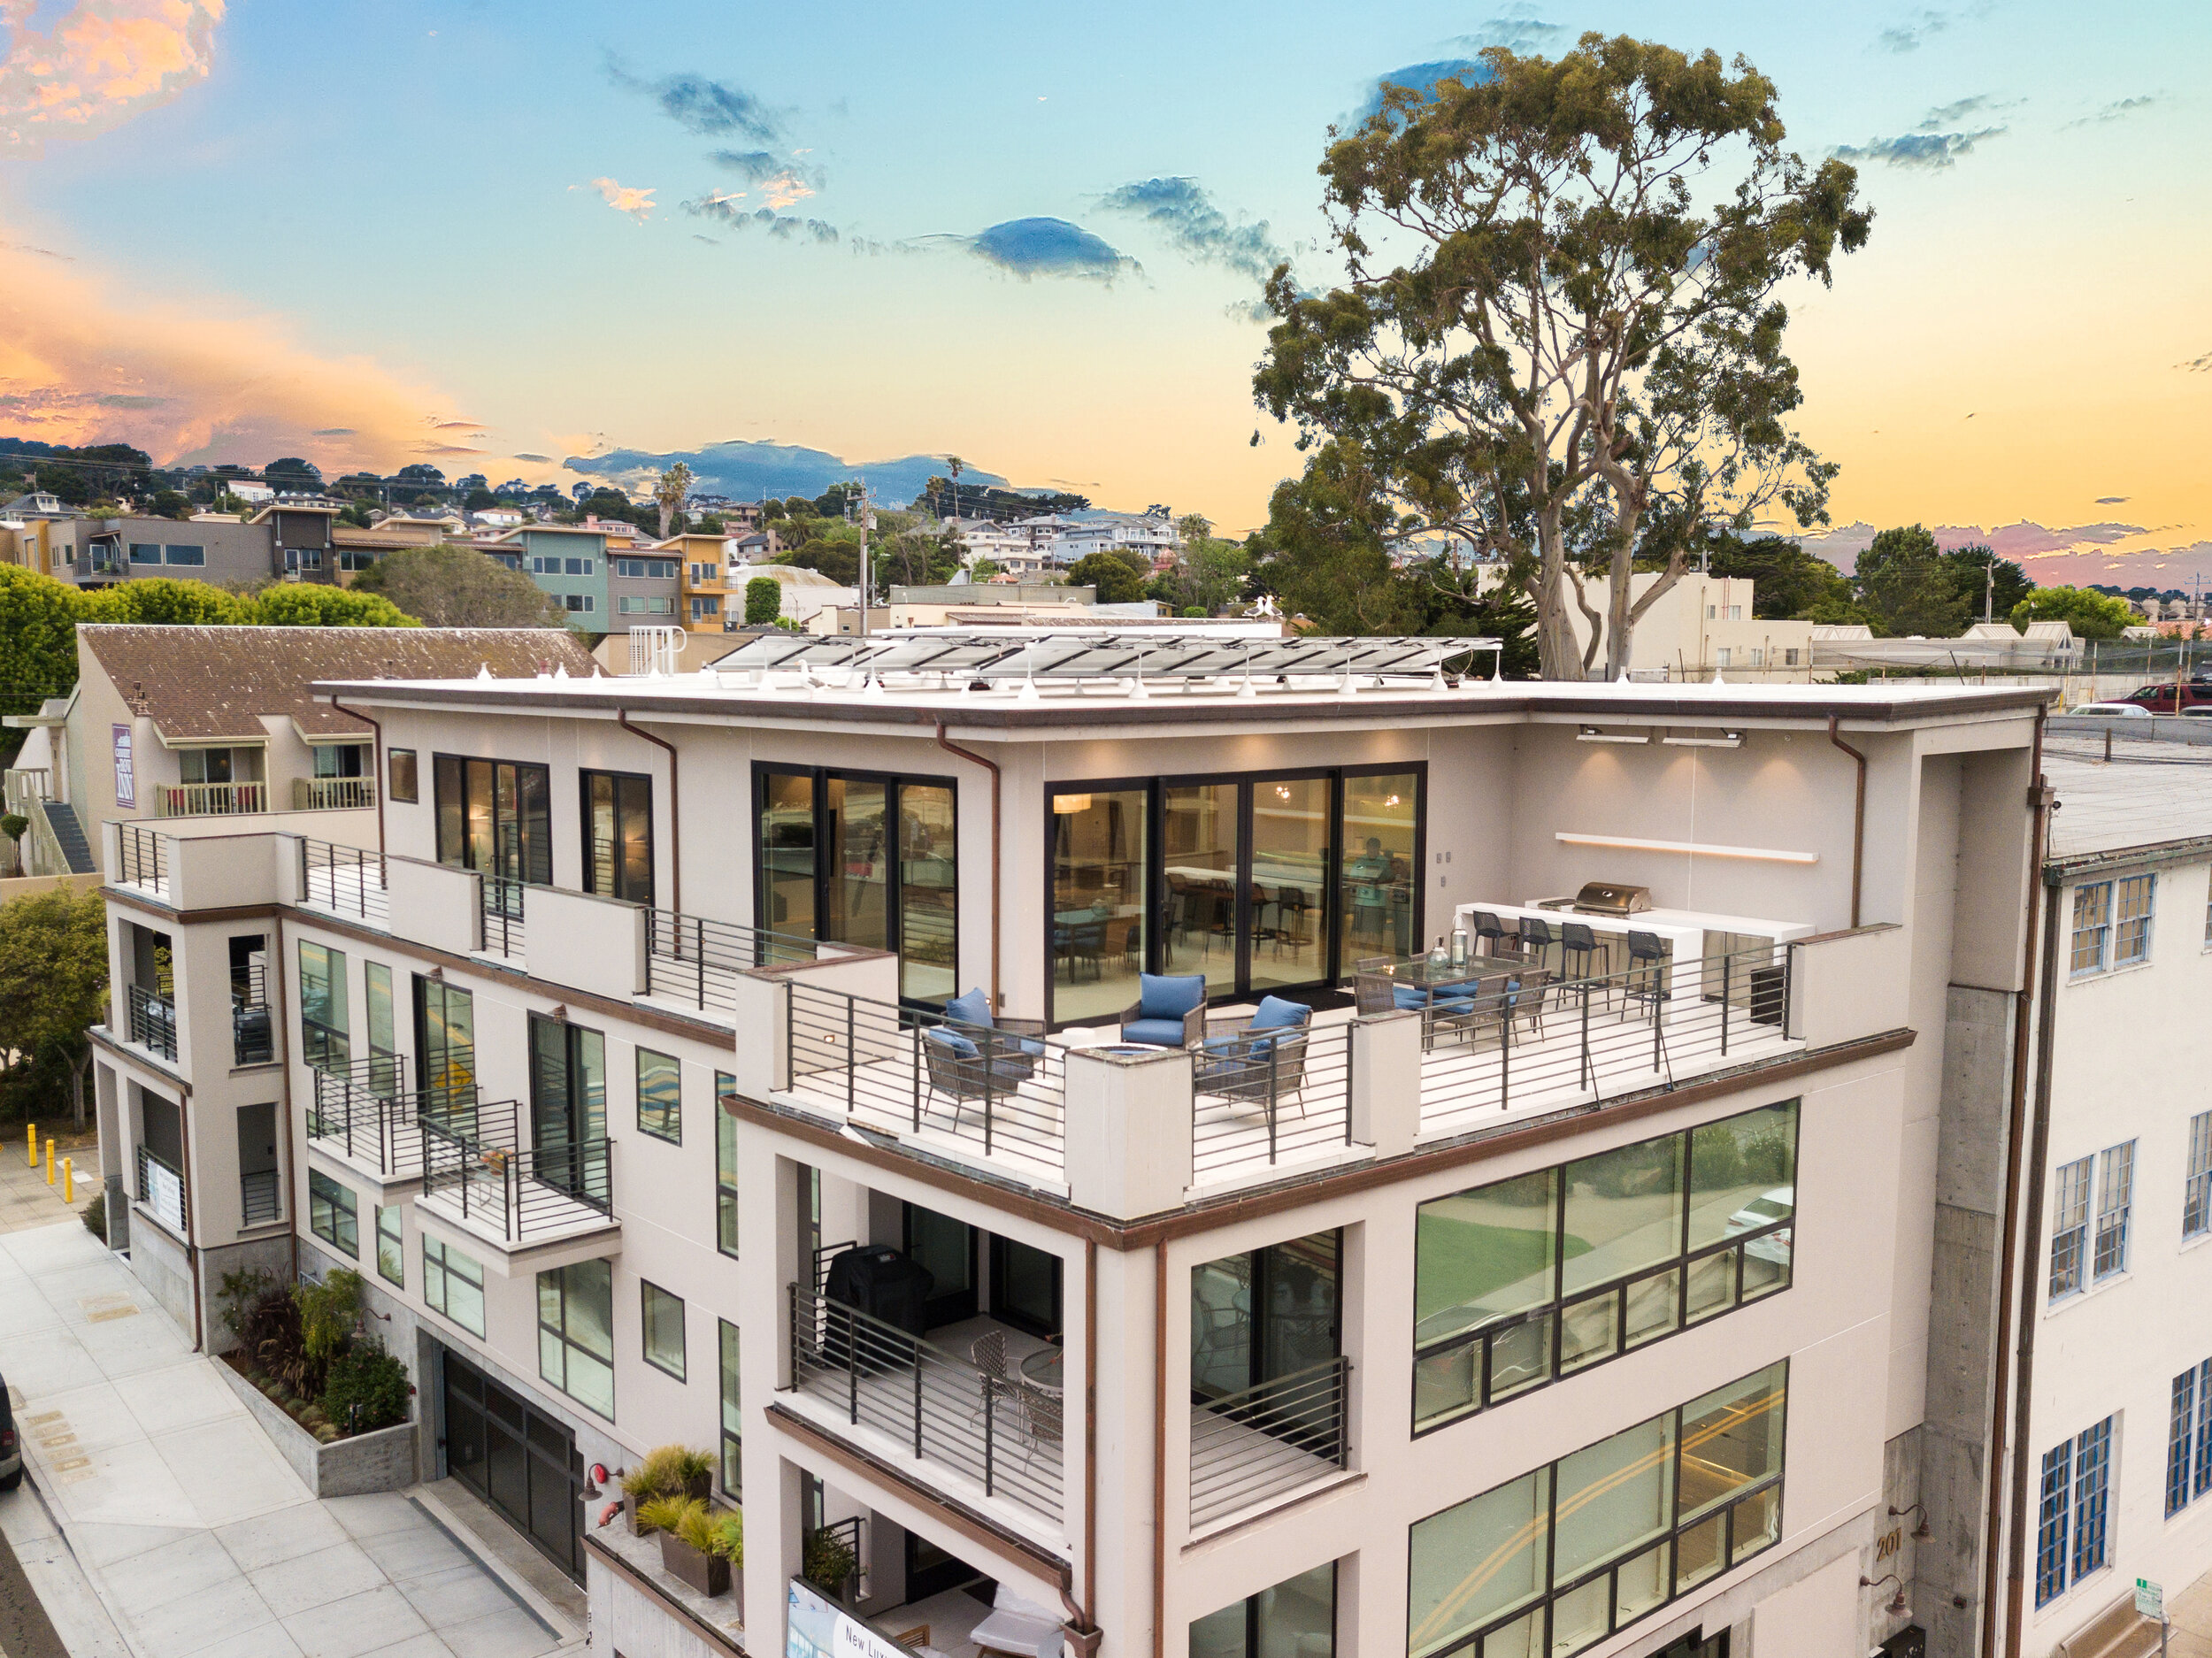 201 Cannery Row #5, Monterey - Represented Buyer